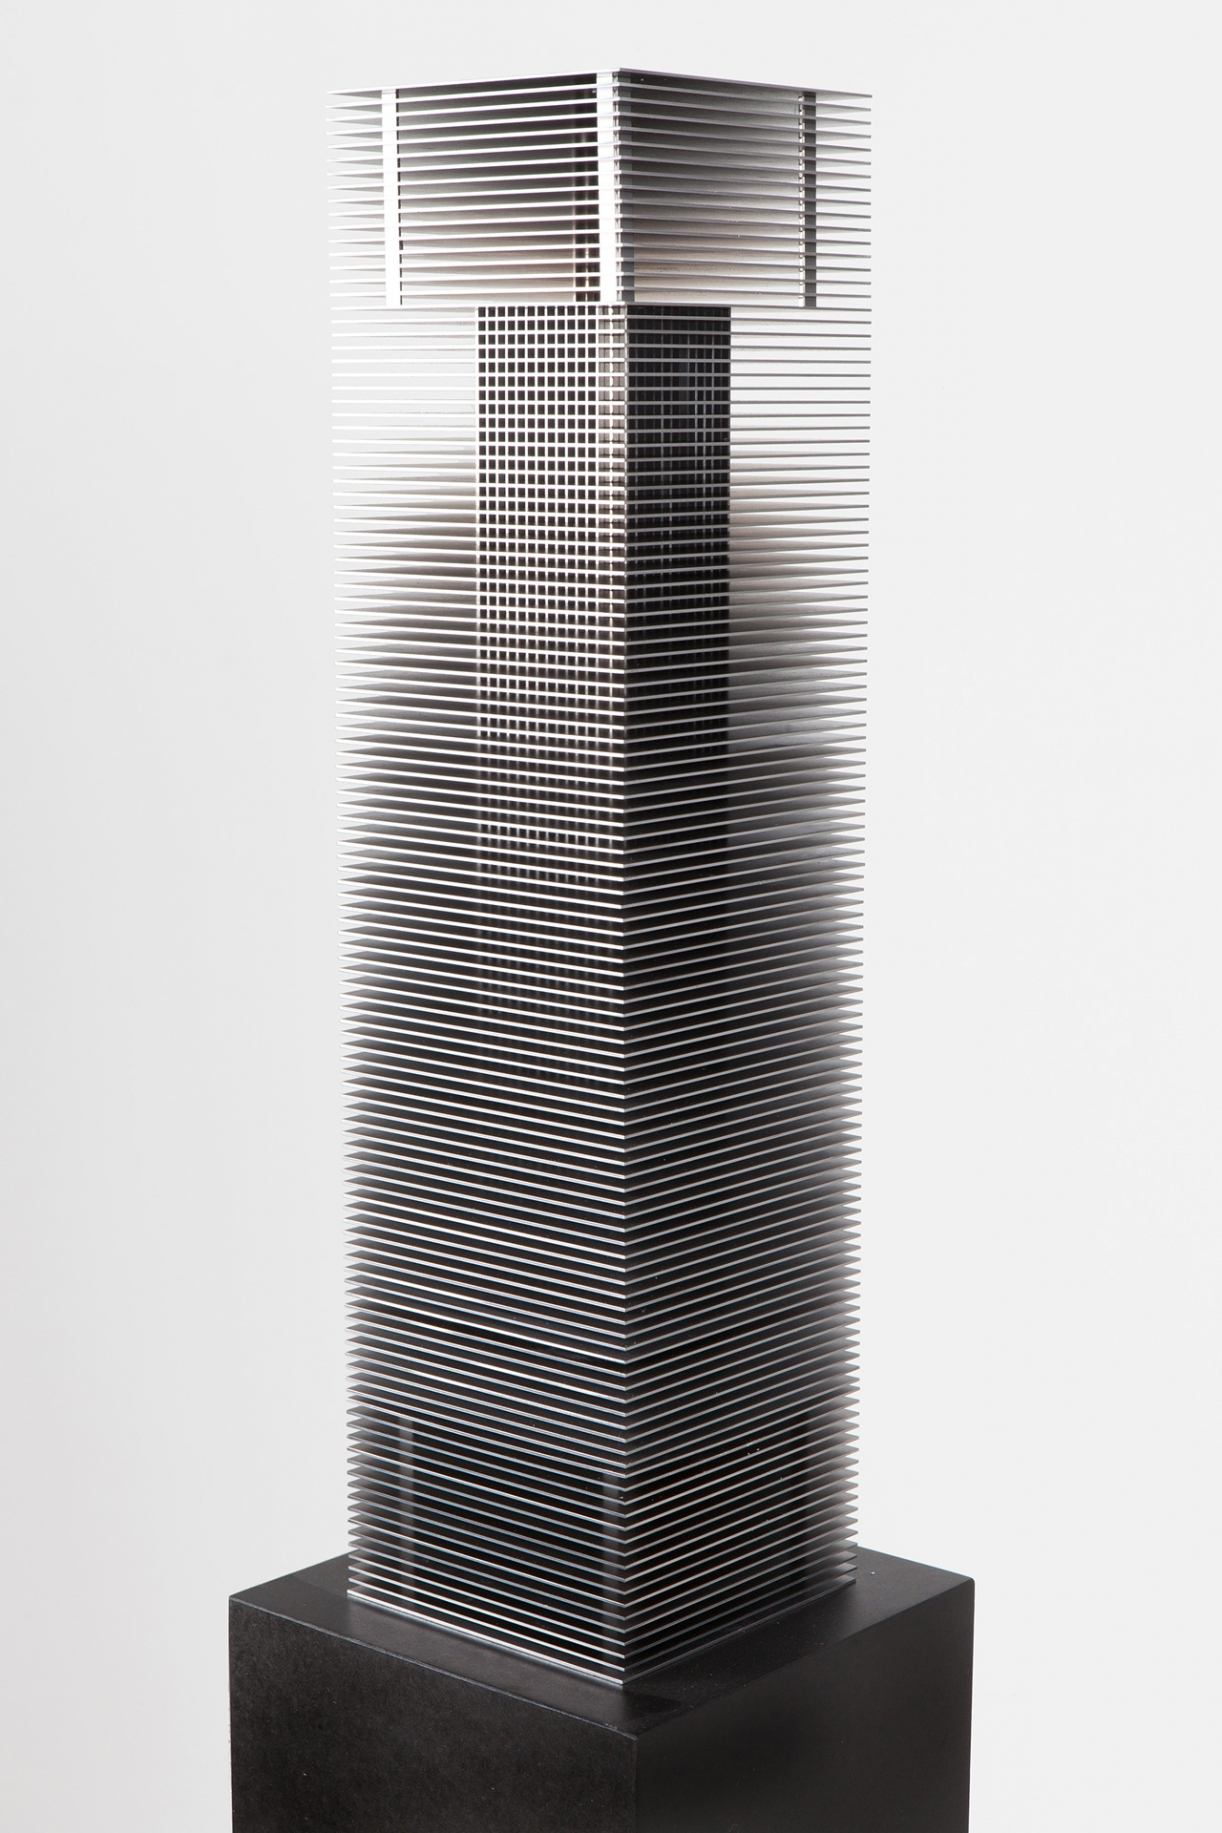 Timo Nasseri, Babel III, 2018, Steel and magnets, 76,5 x 19 x 19 cm, Edition 3 + 1 AP